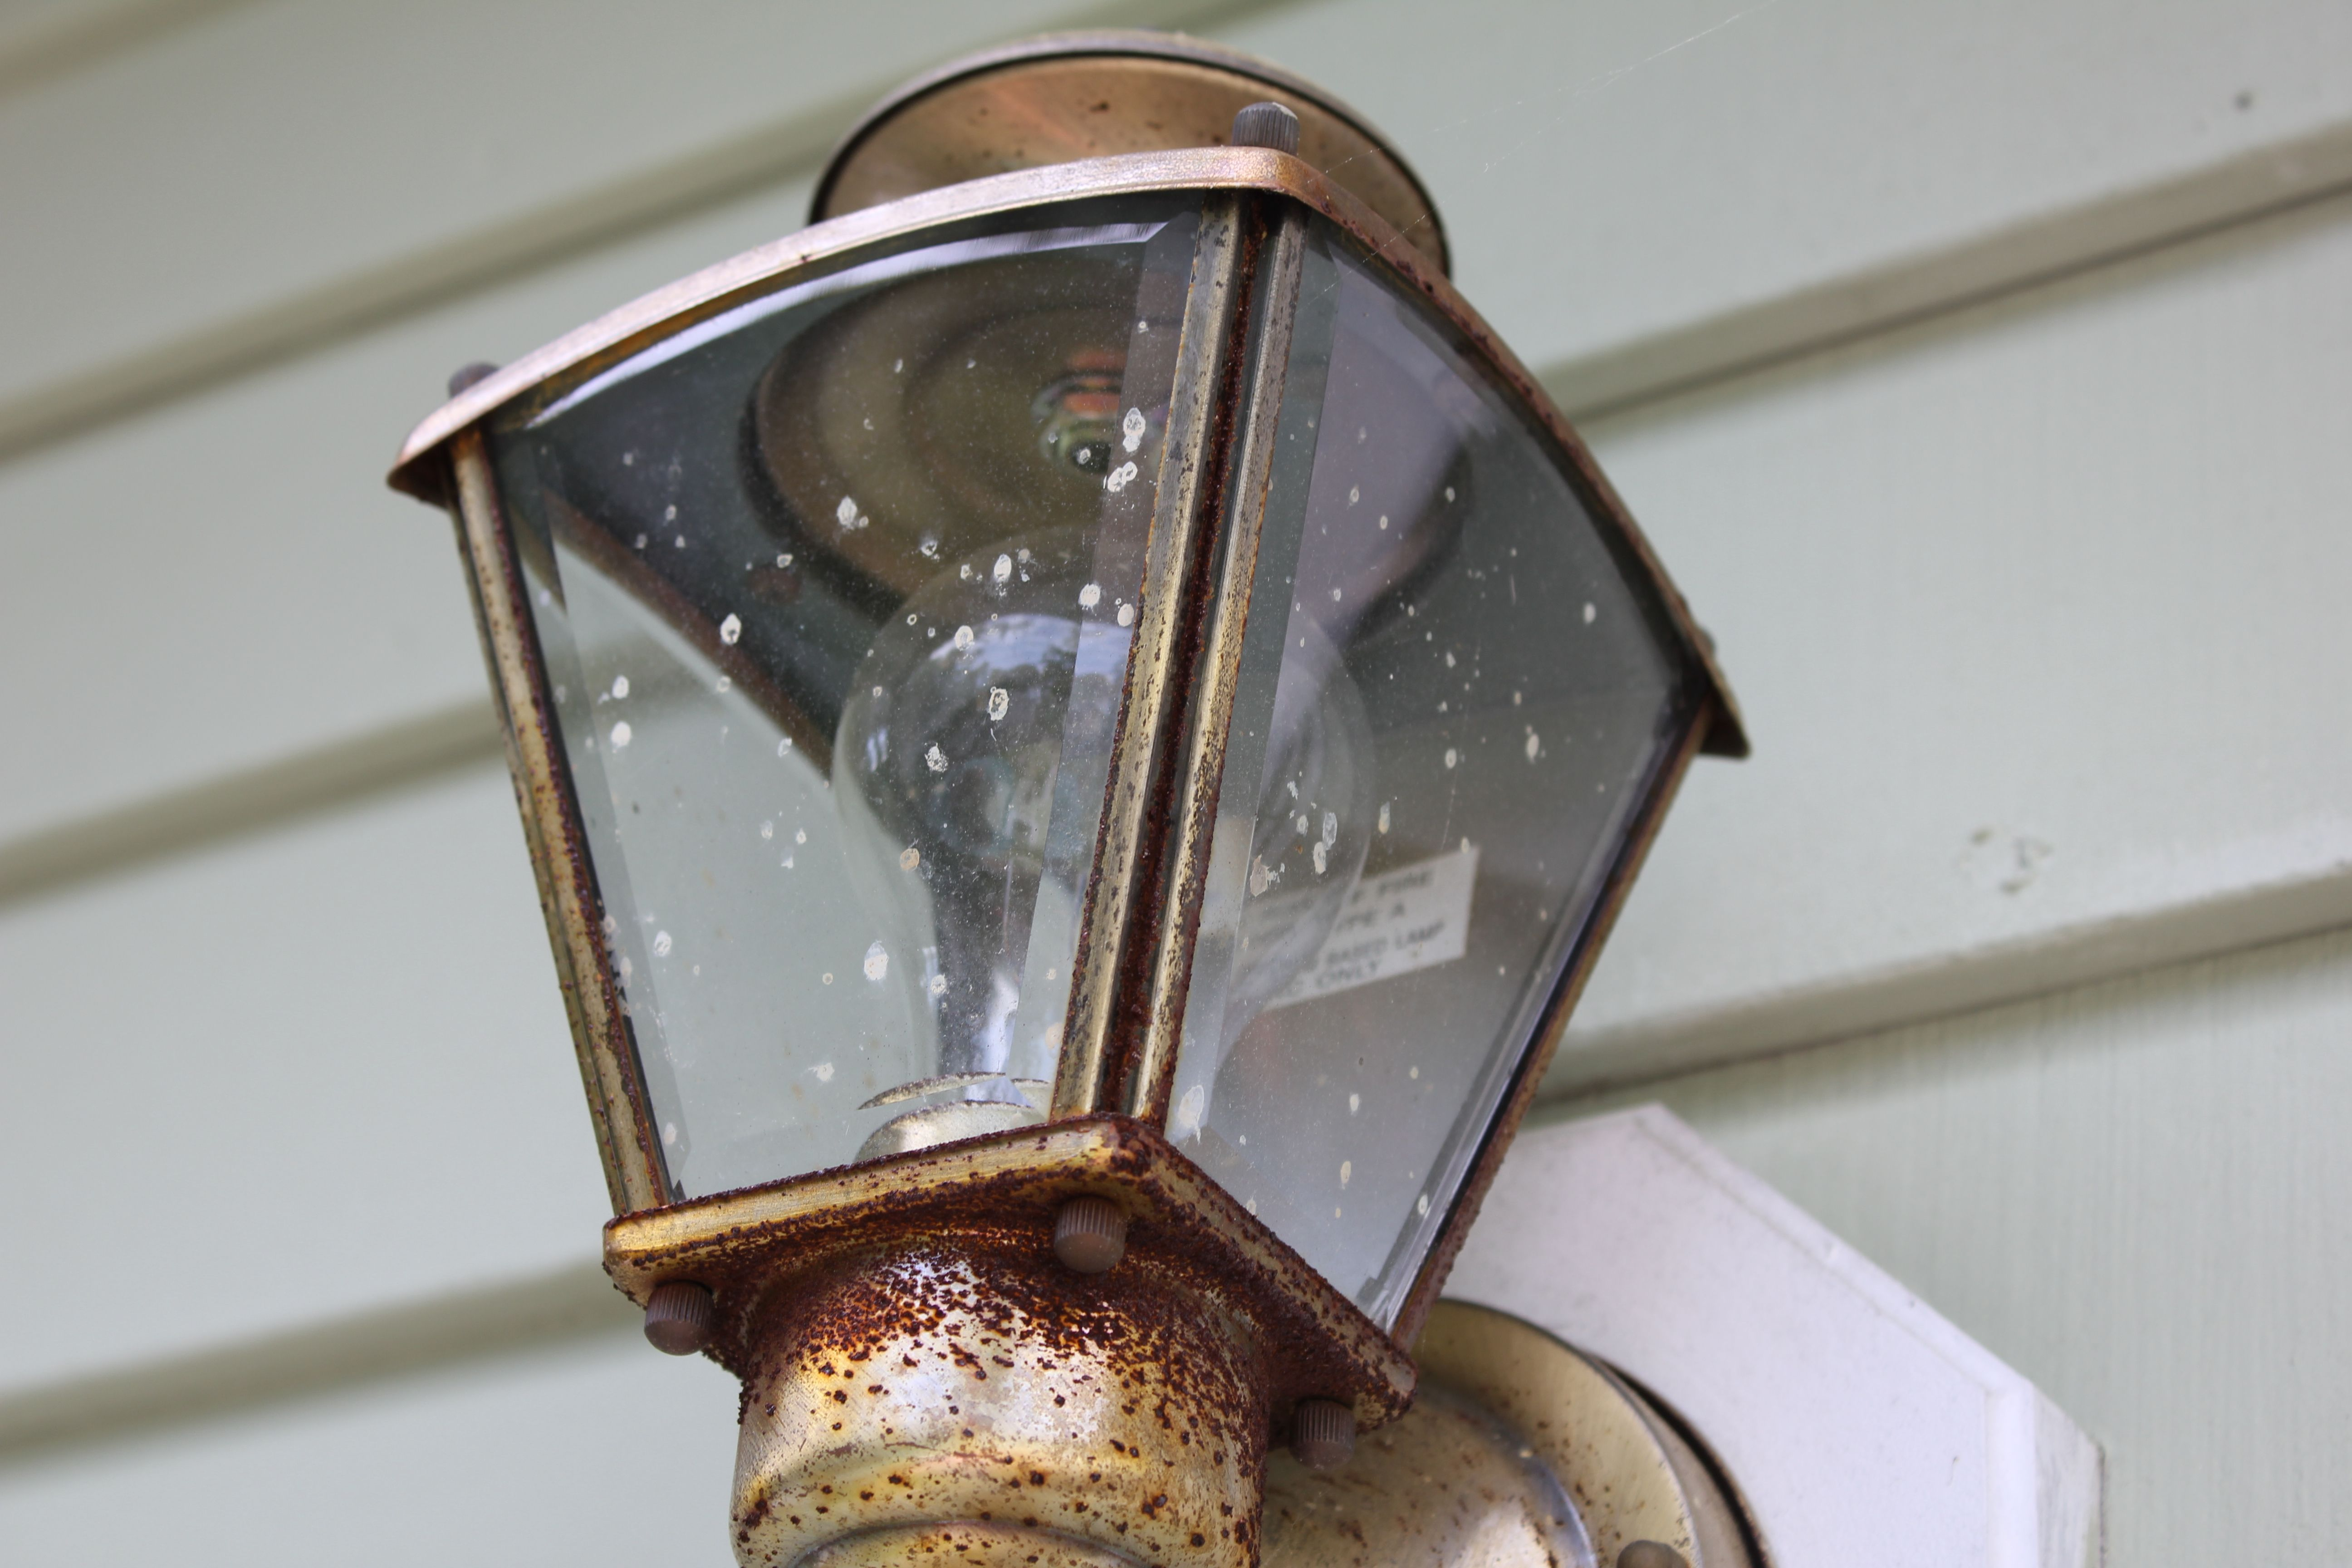 Outdoor lamps  outdoor lamp  my photography  Pinterest  Photography